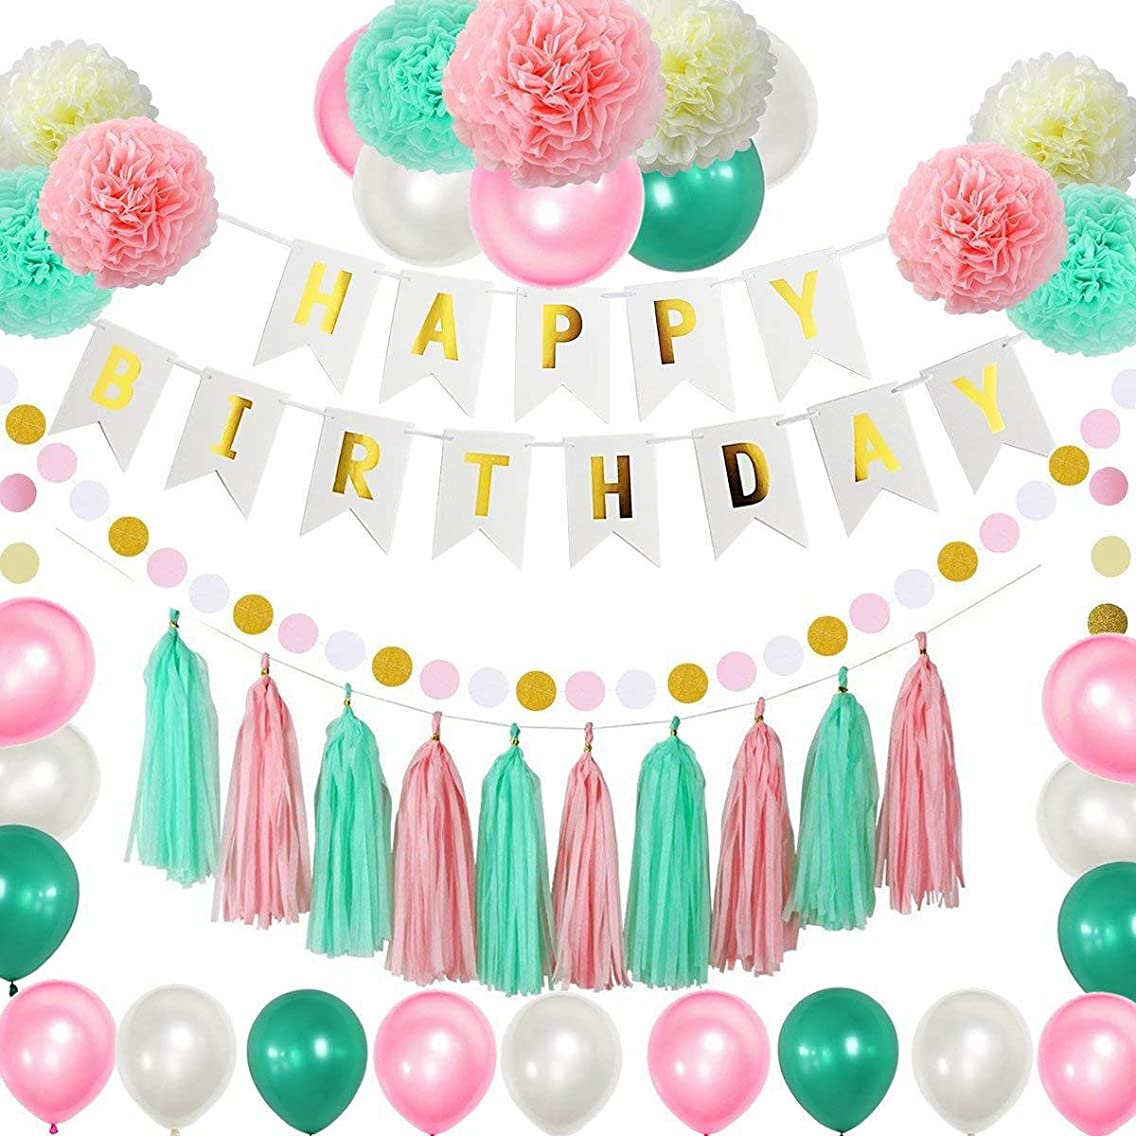 Birthday Party Supplies Set Party Decoration for Girls- includes Happy Birthday Banner Party Balloons Paper Pom Poms Tassels For Girls Birthday Party